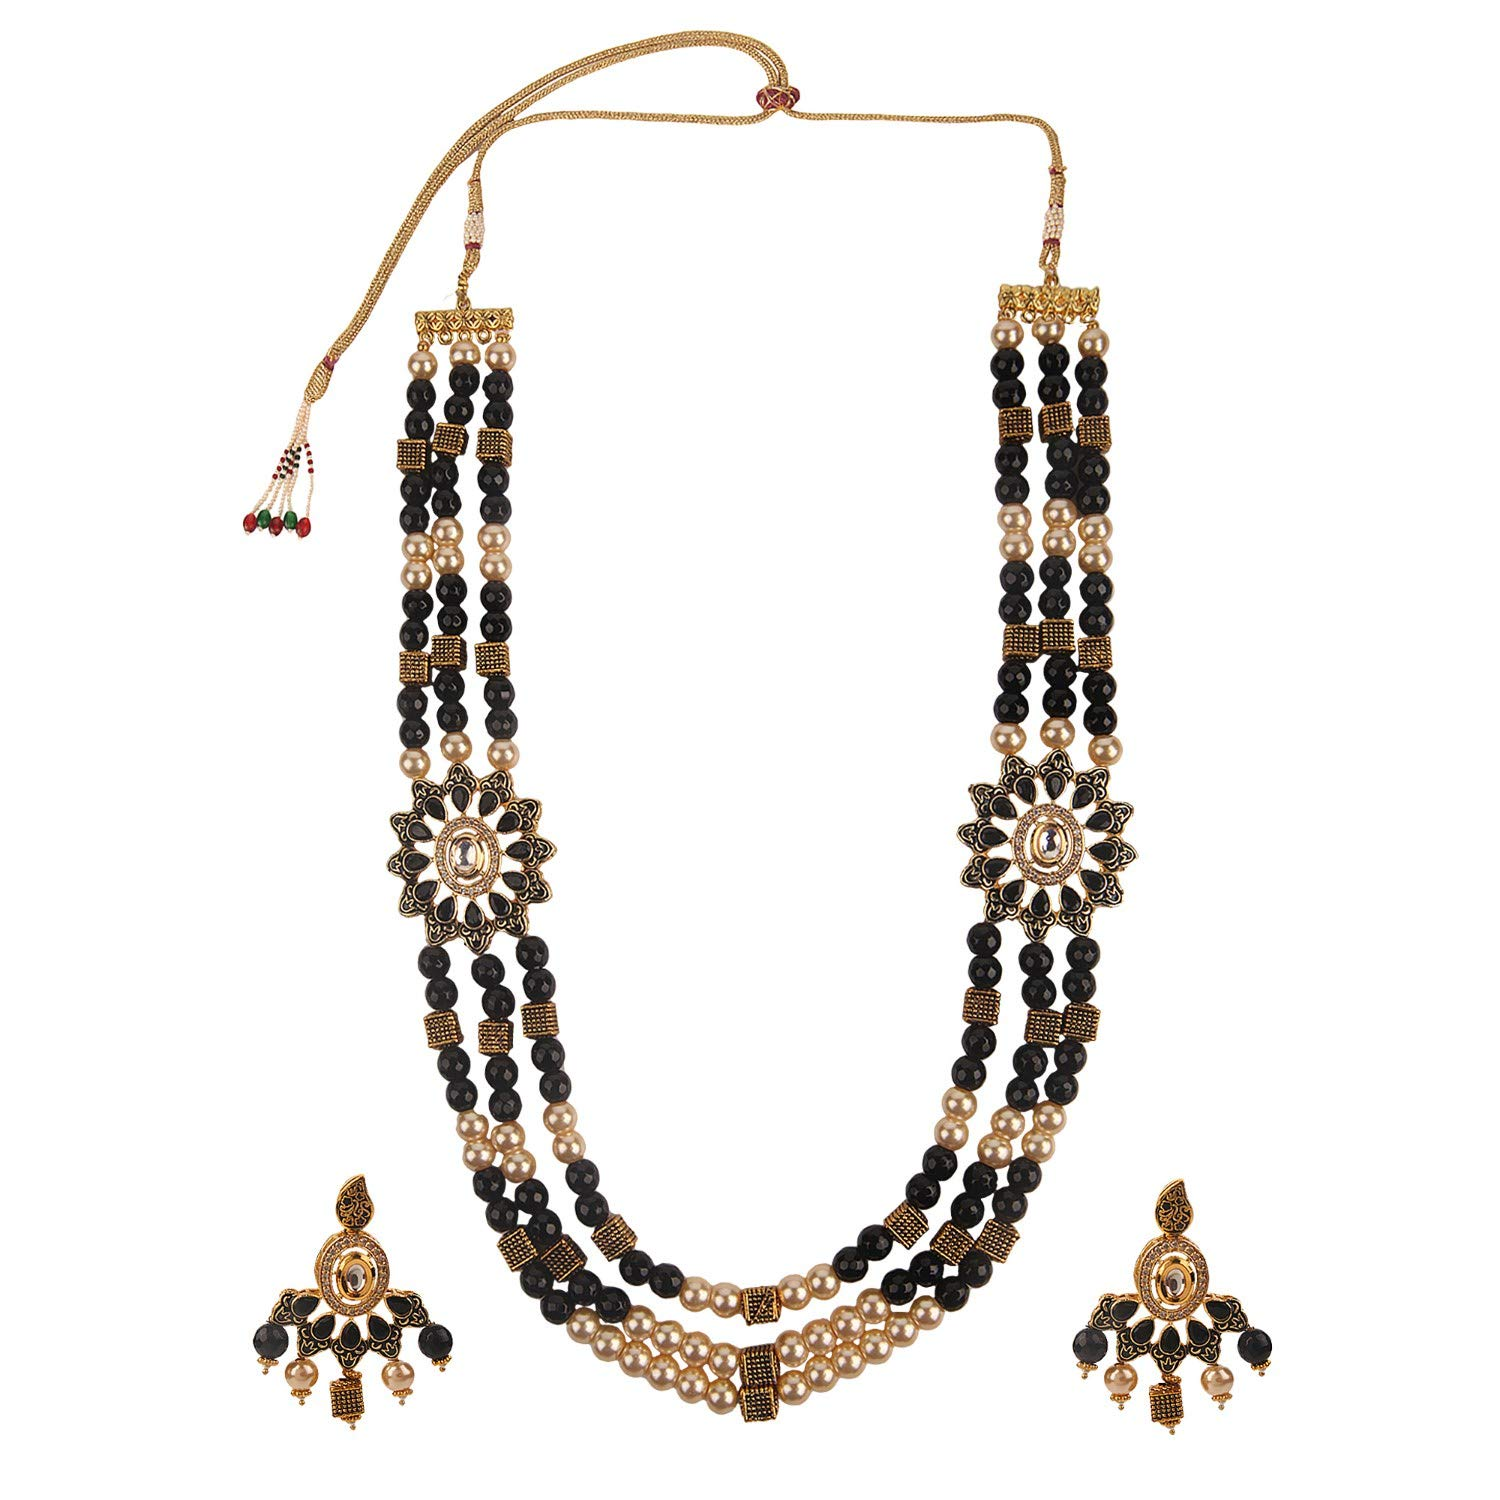 Efulgenz Indian Bollywood Multi Layered Faux Ruby Kundan Black Pearl Beads Bridal Wedding Floral Necklace Earrings Jewelry Set for Women